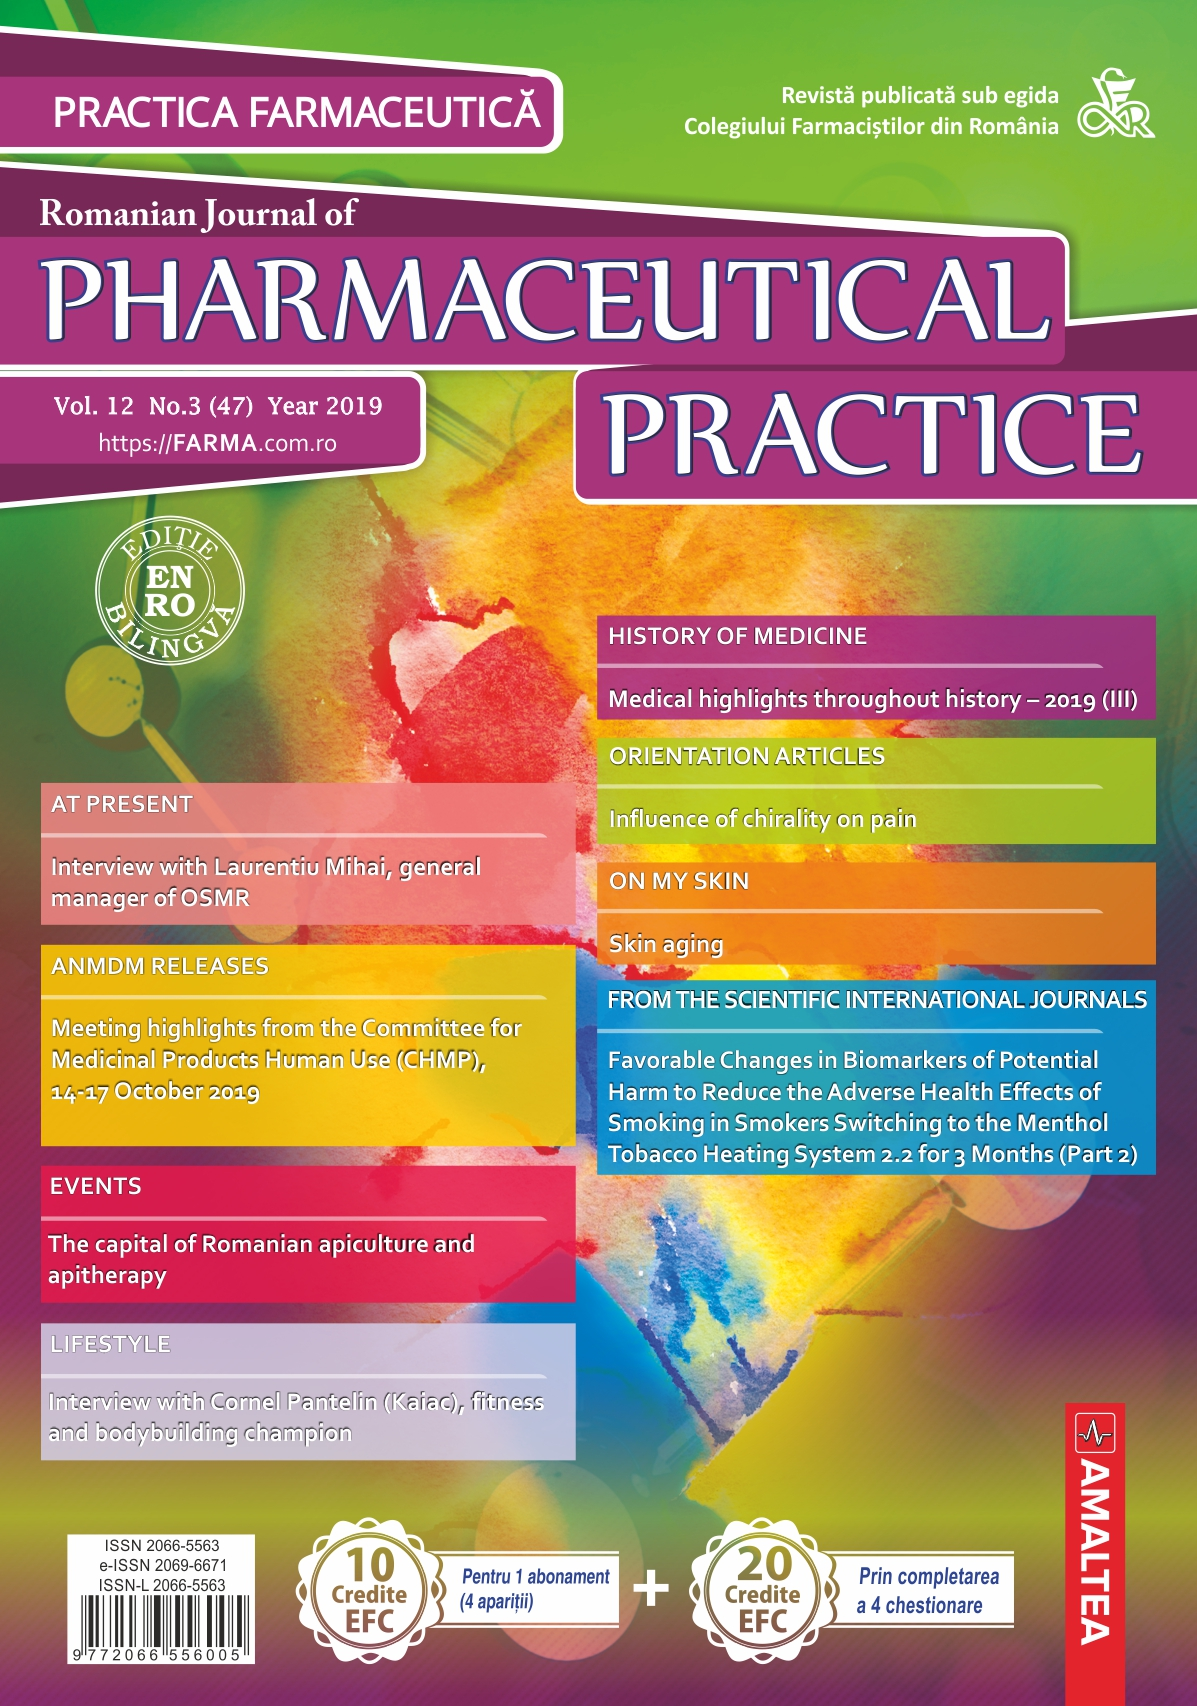 Romanian Journal of Pharmaceutical Practice - Practica Farmaceutica, Vol. 12, No. 3 (47), 2019